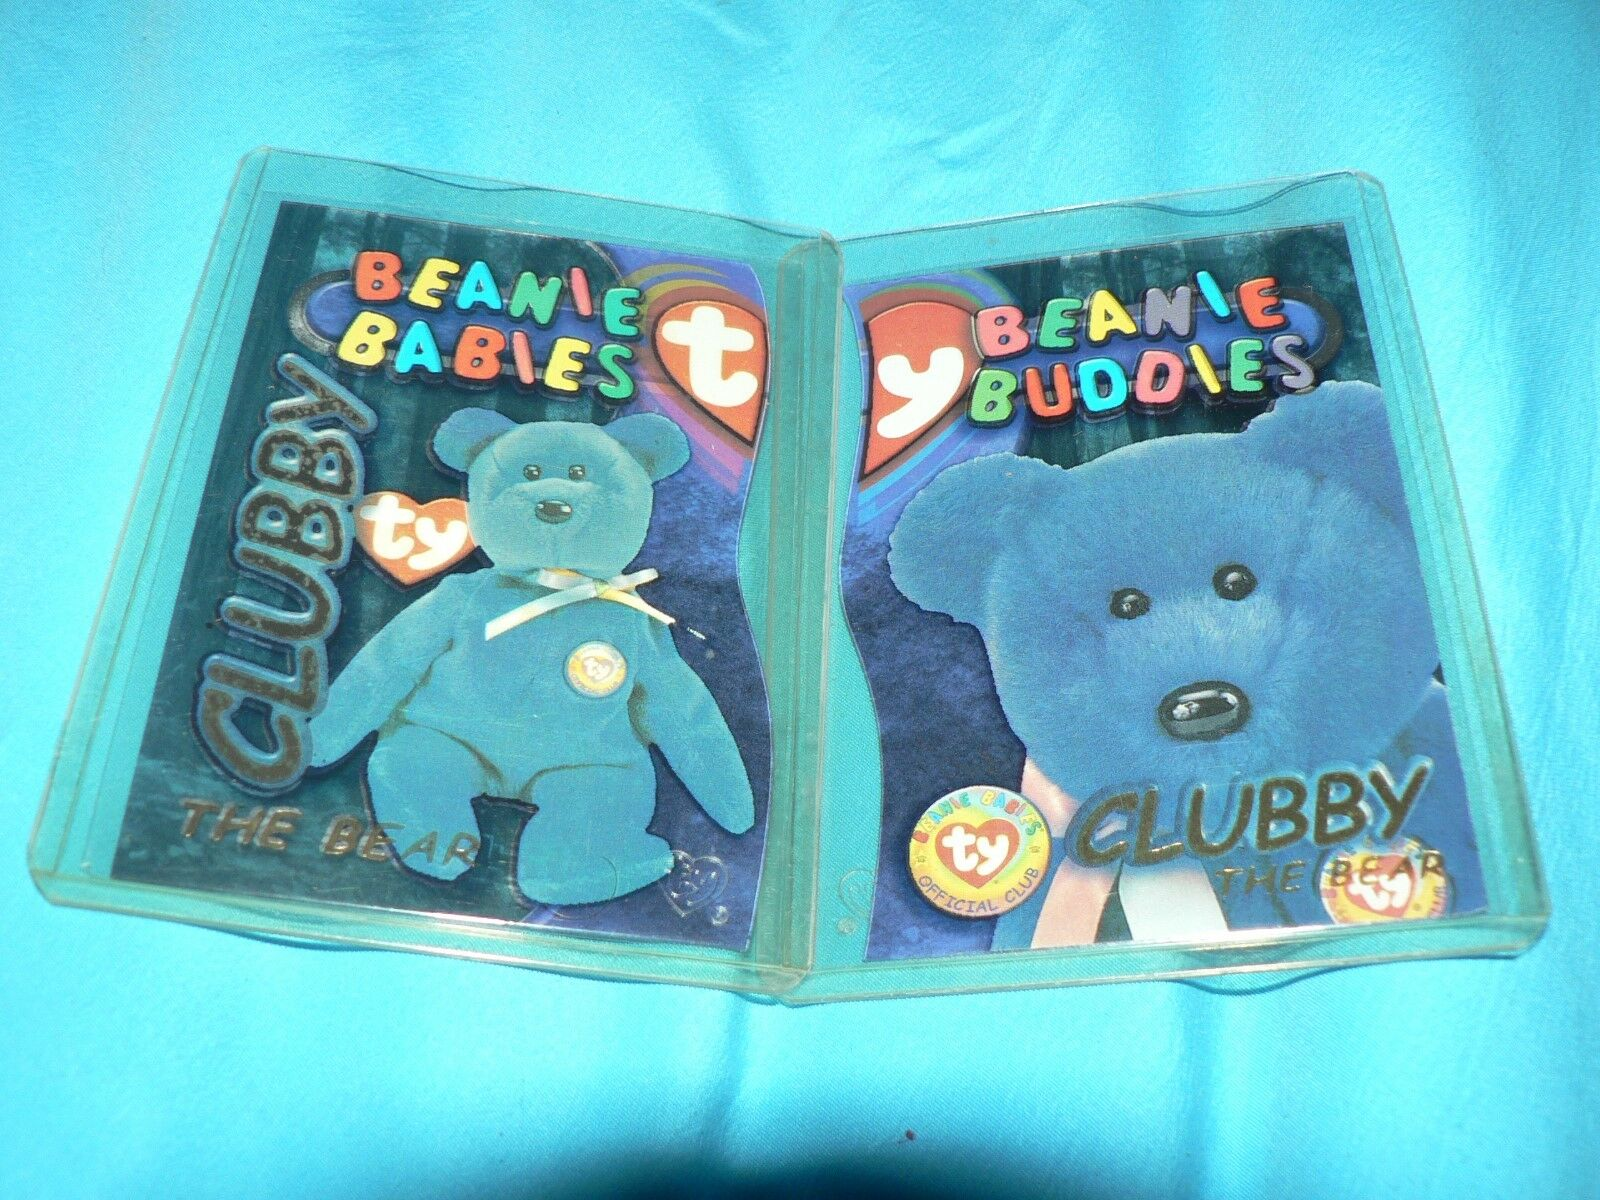 RARE Ty Beanie Babie Buddies 2 Clubby Cards gold 9990 Limited Edition 2 card Lot